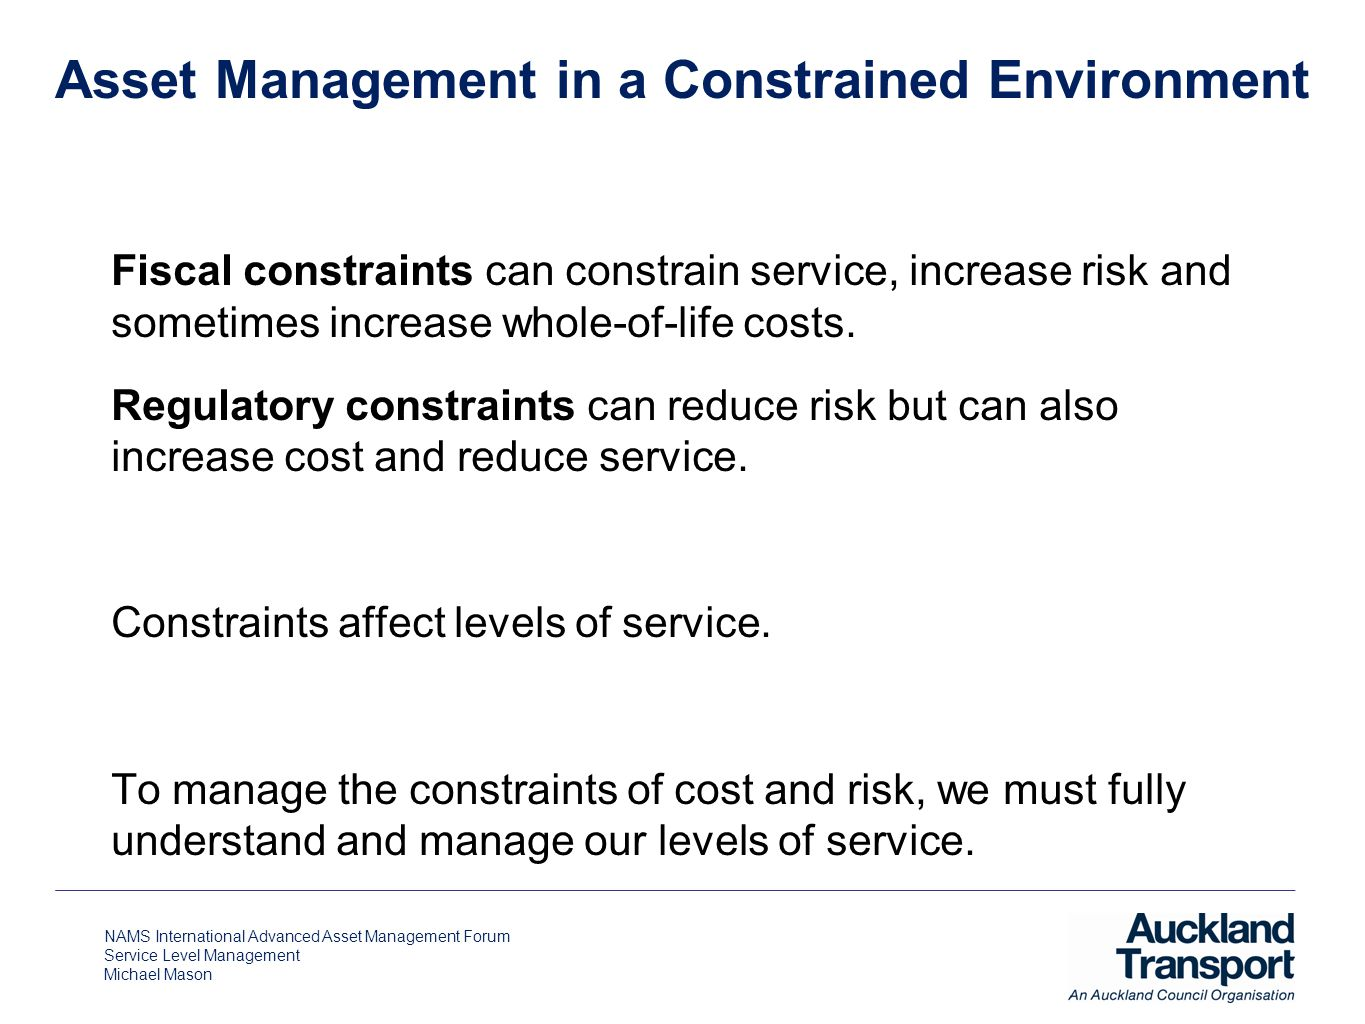 NAMS International Advanced Asset Management Forum Service Level Management Michael Mason Asset Management in a Constrained Environment Fiscal constra